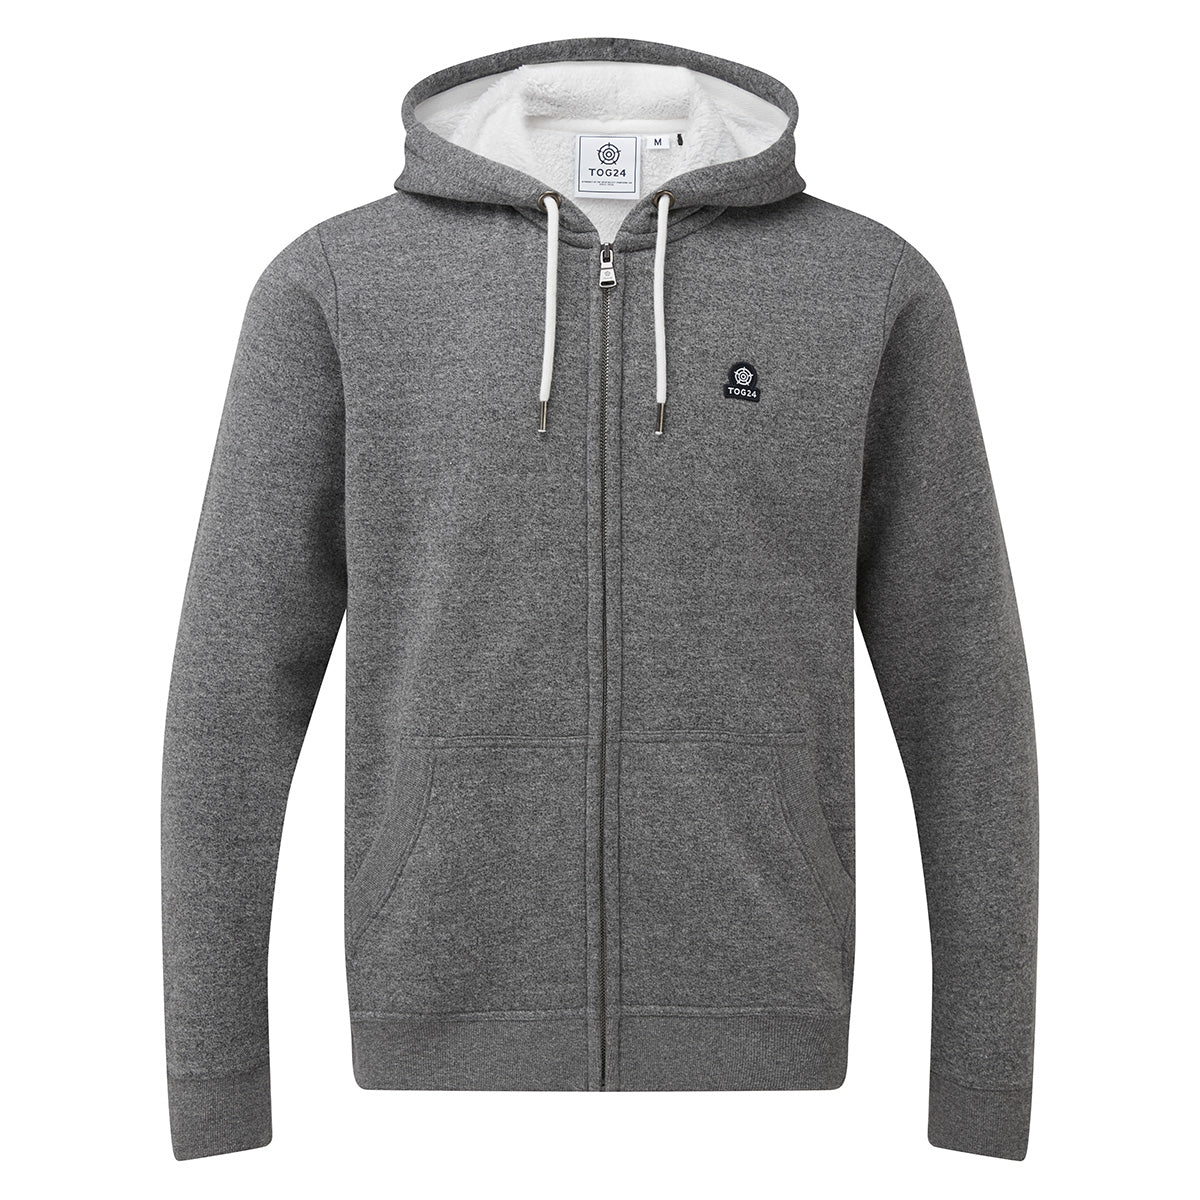 Darfield Mens Sherpa Lined Hoody - Dark Grey Marl image 4